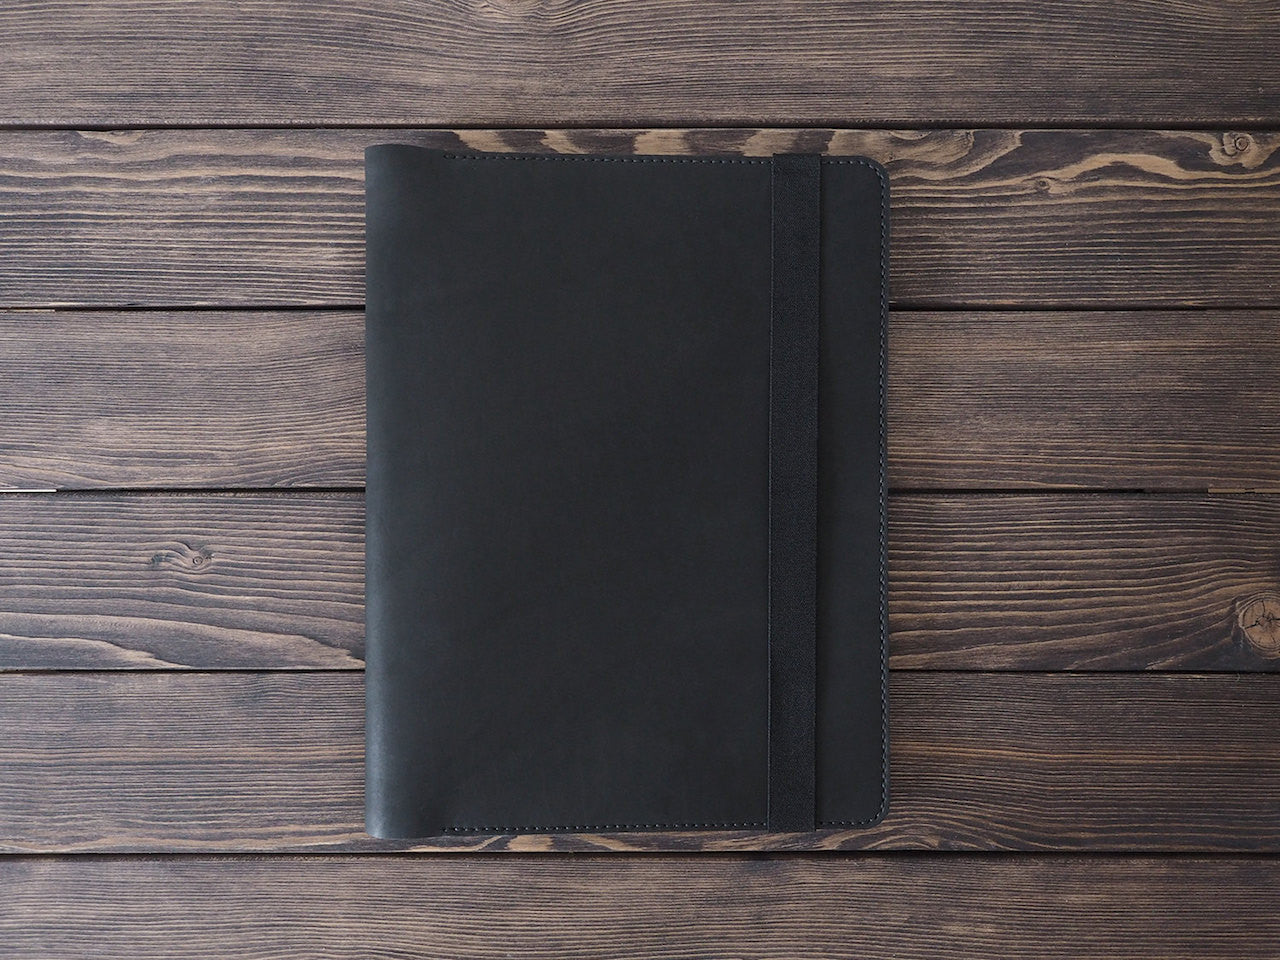 "iPad Pro 12.9"" Leather Folio in Black - Handmade by INSIDE on Jetset Times SHOP"